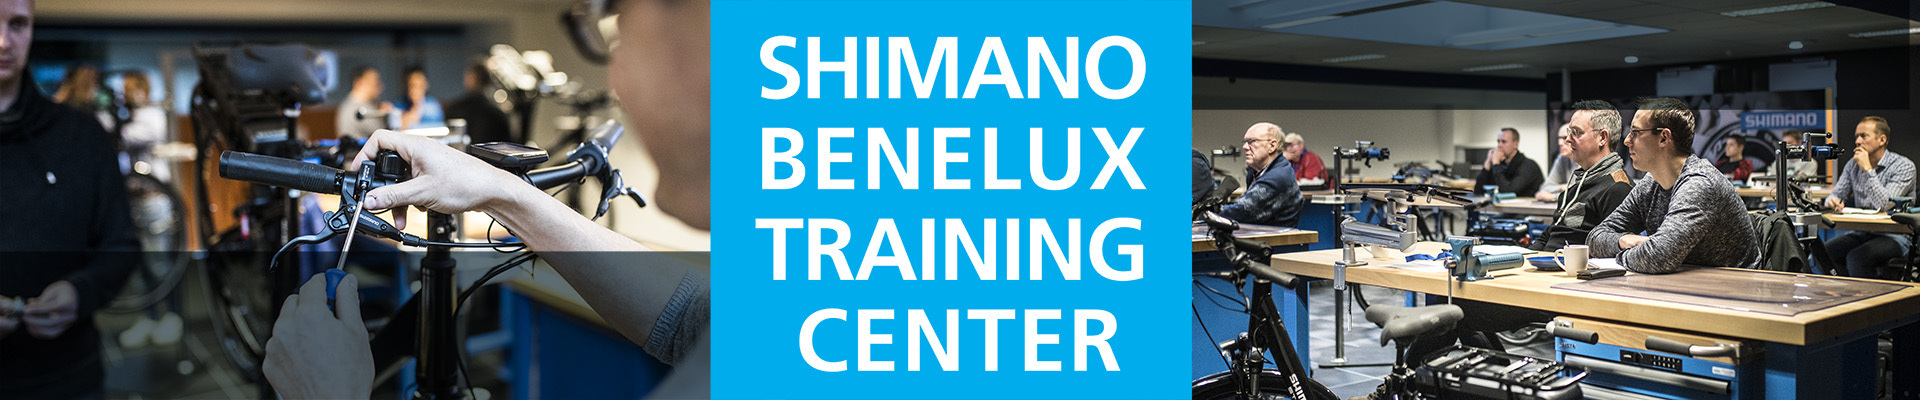 Shimano Benelux Training Center 2020 -2021